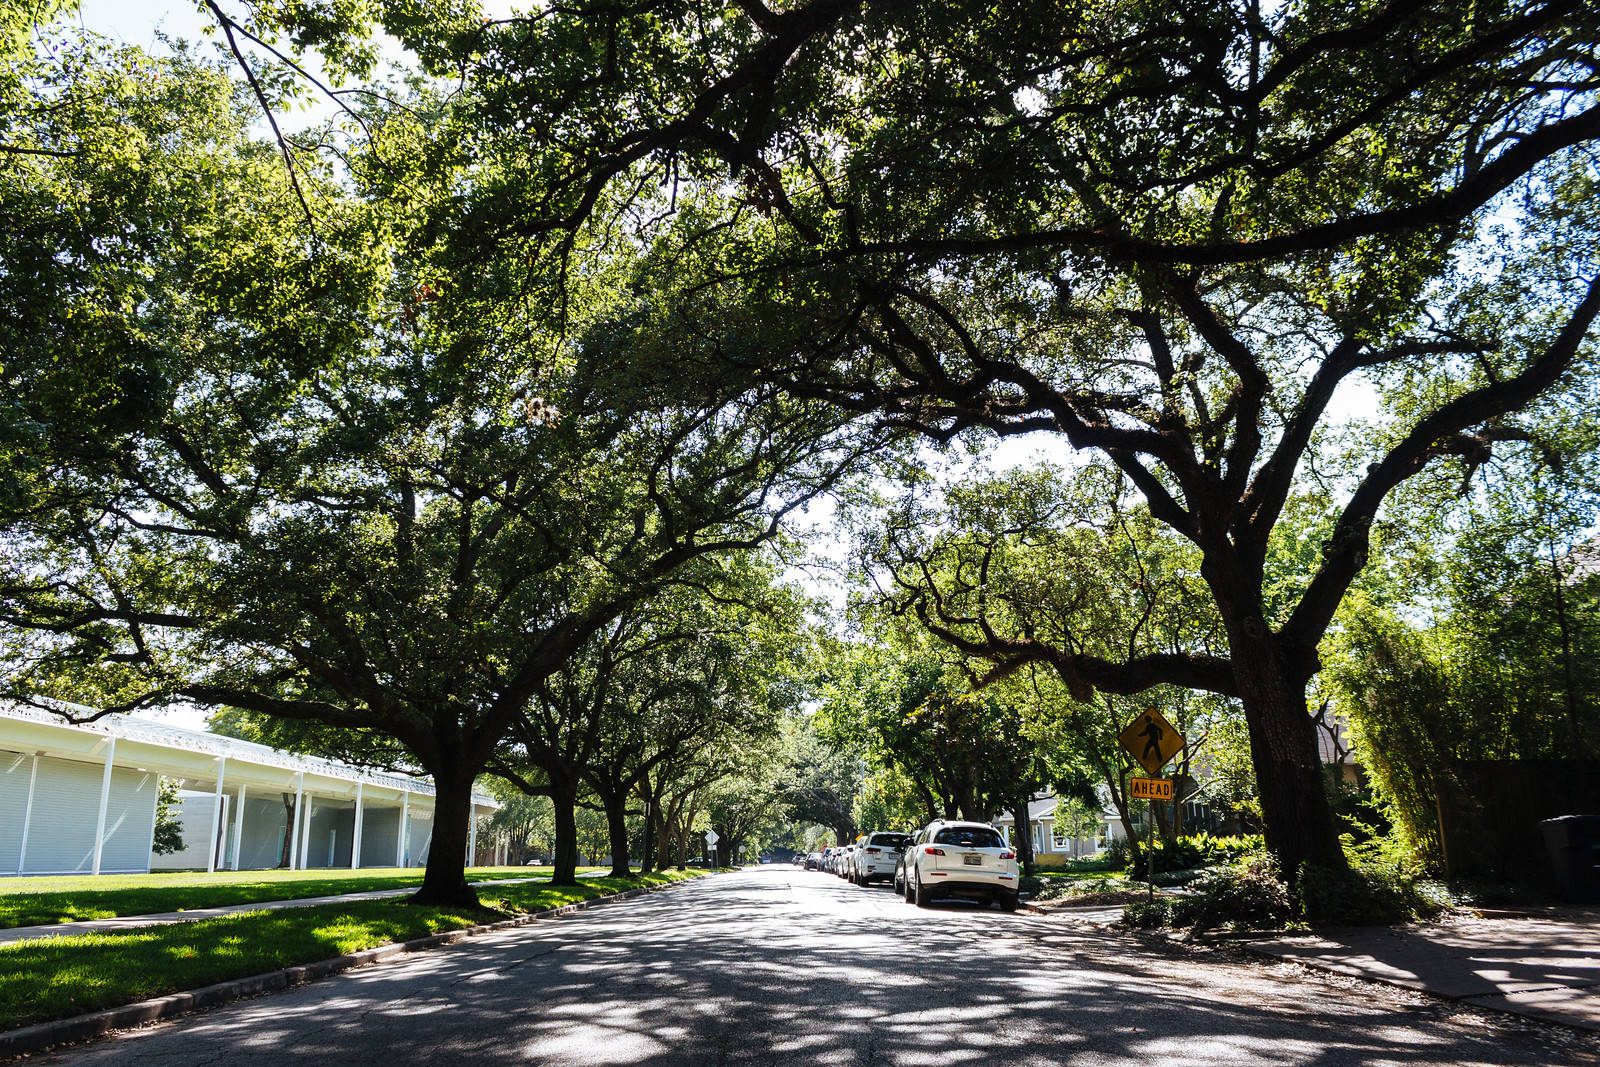 Residential street with large oak trees creating a canopy overhead